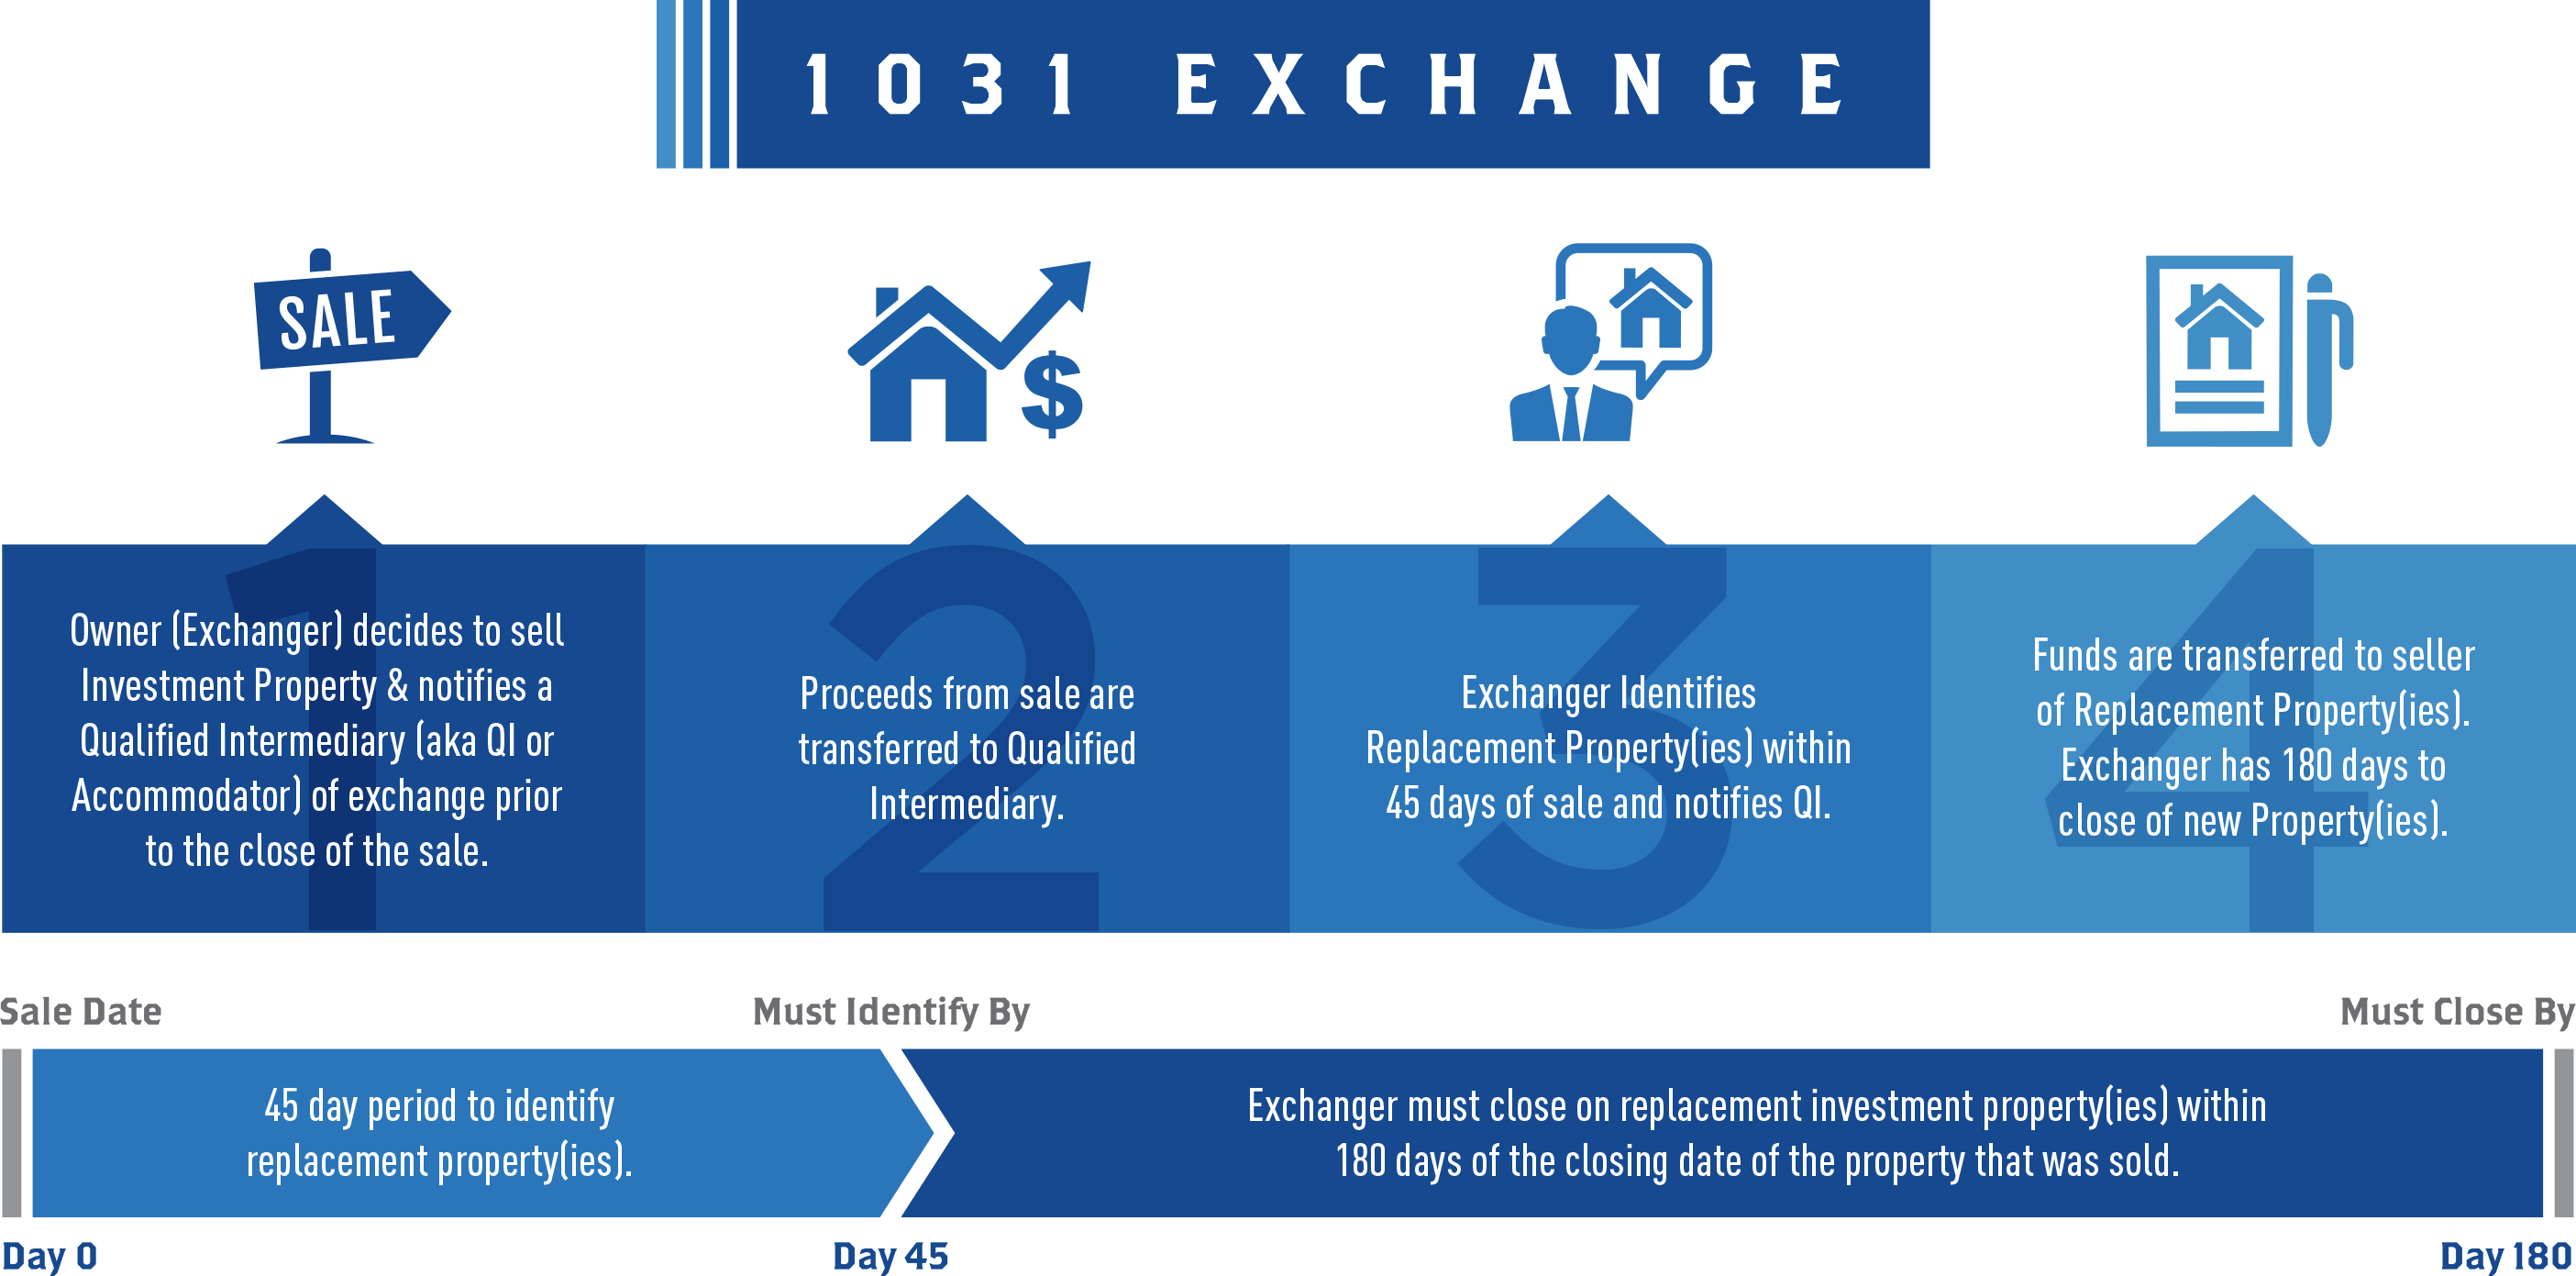 1031 Exchange Graphic